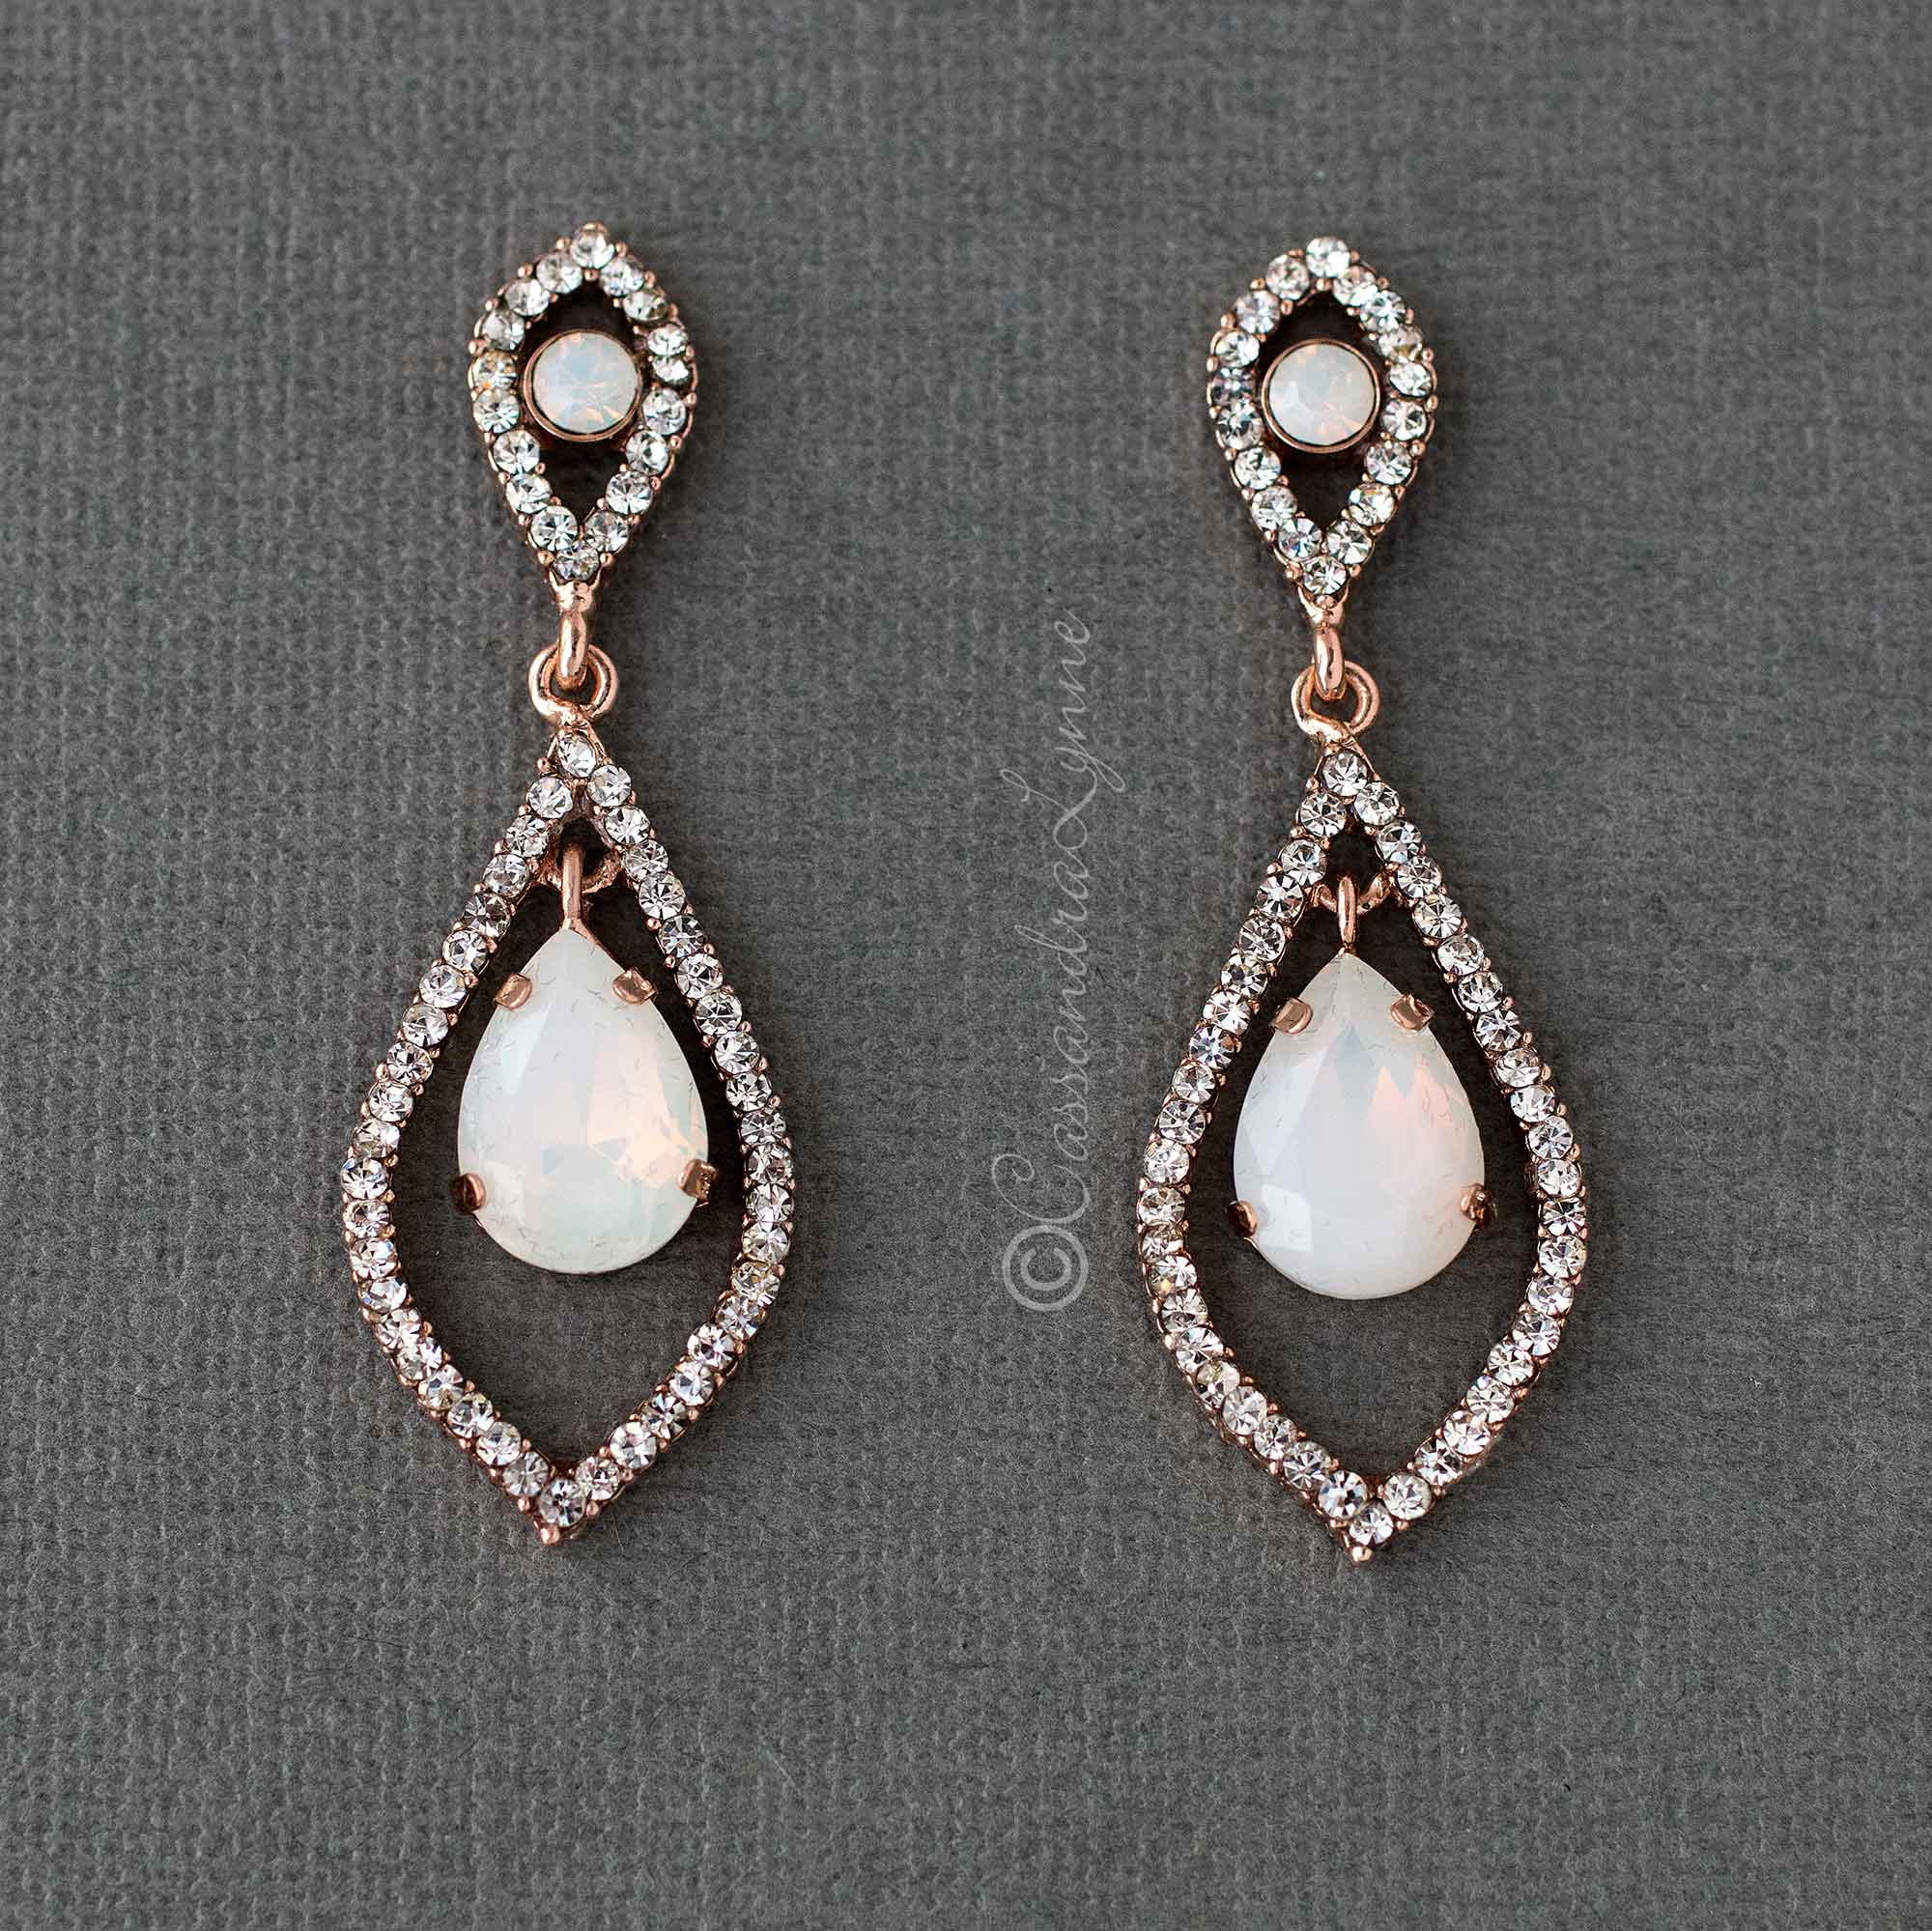 Opalescent Wedding Earrings in Rose Gold